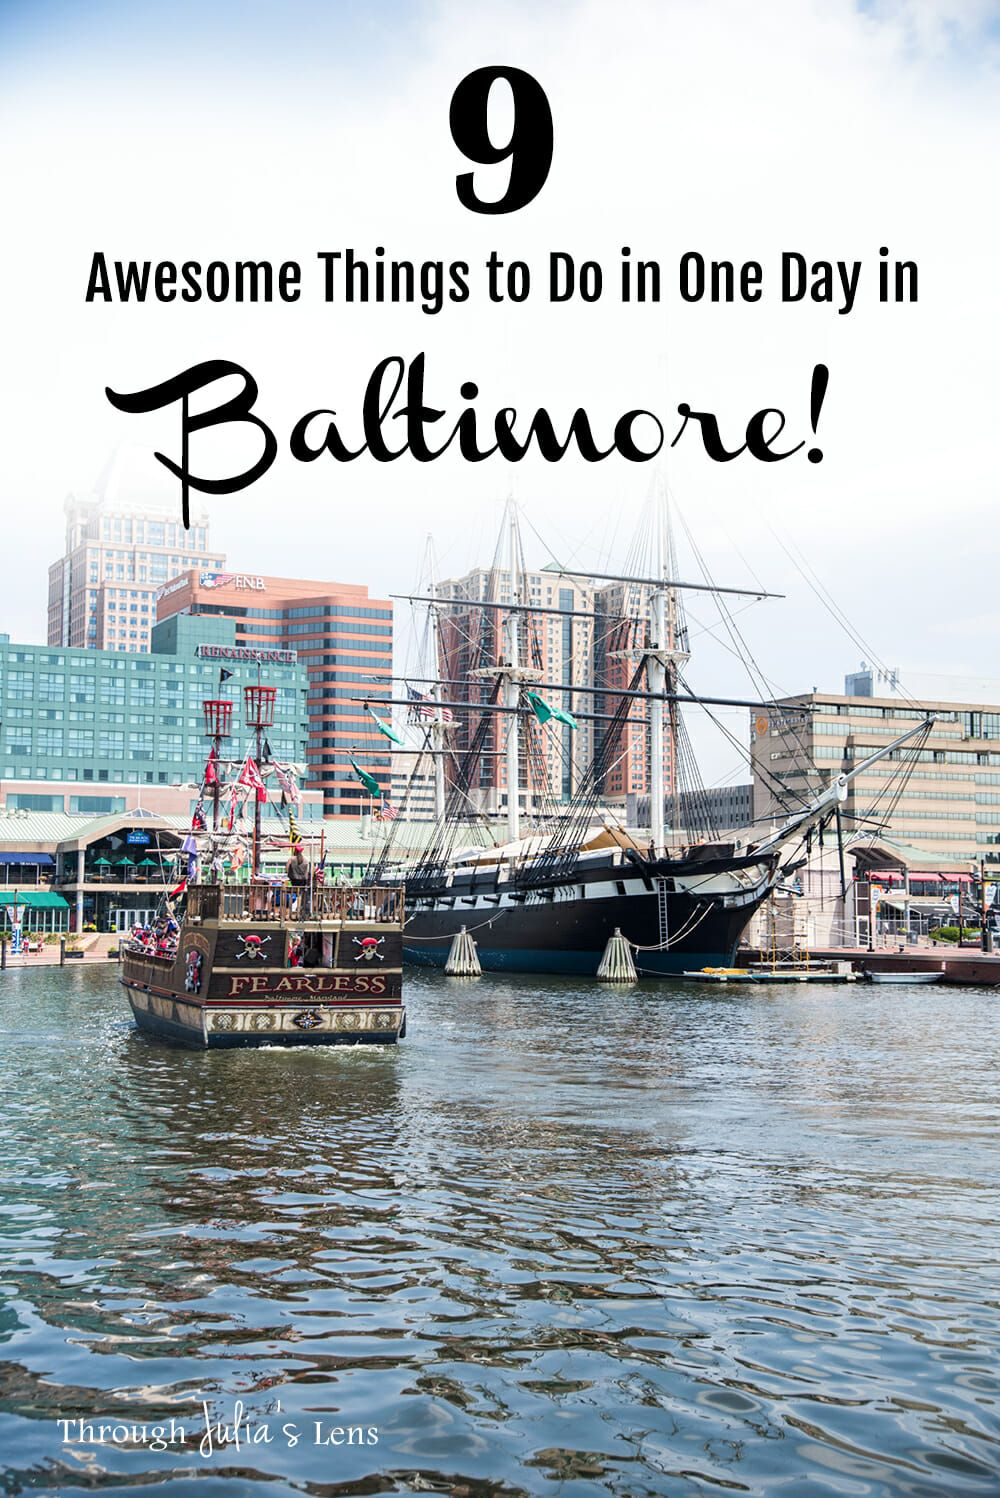 How Do You Get From Baltimore To Washington Dc